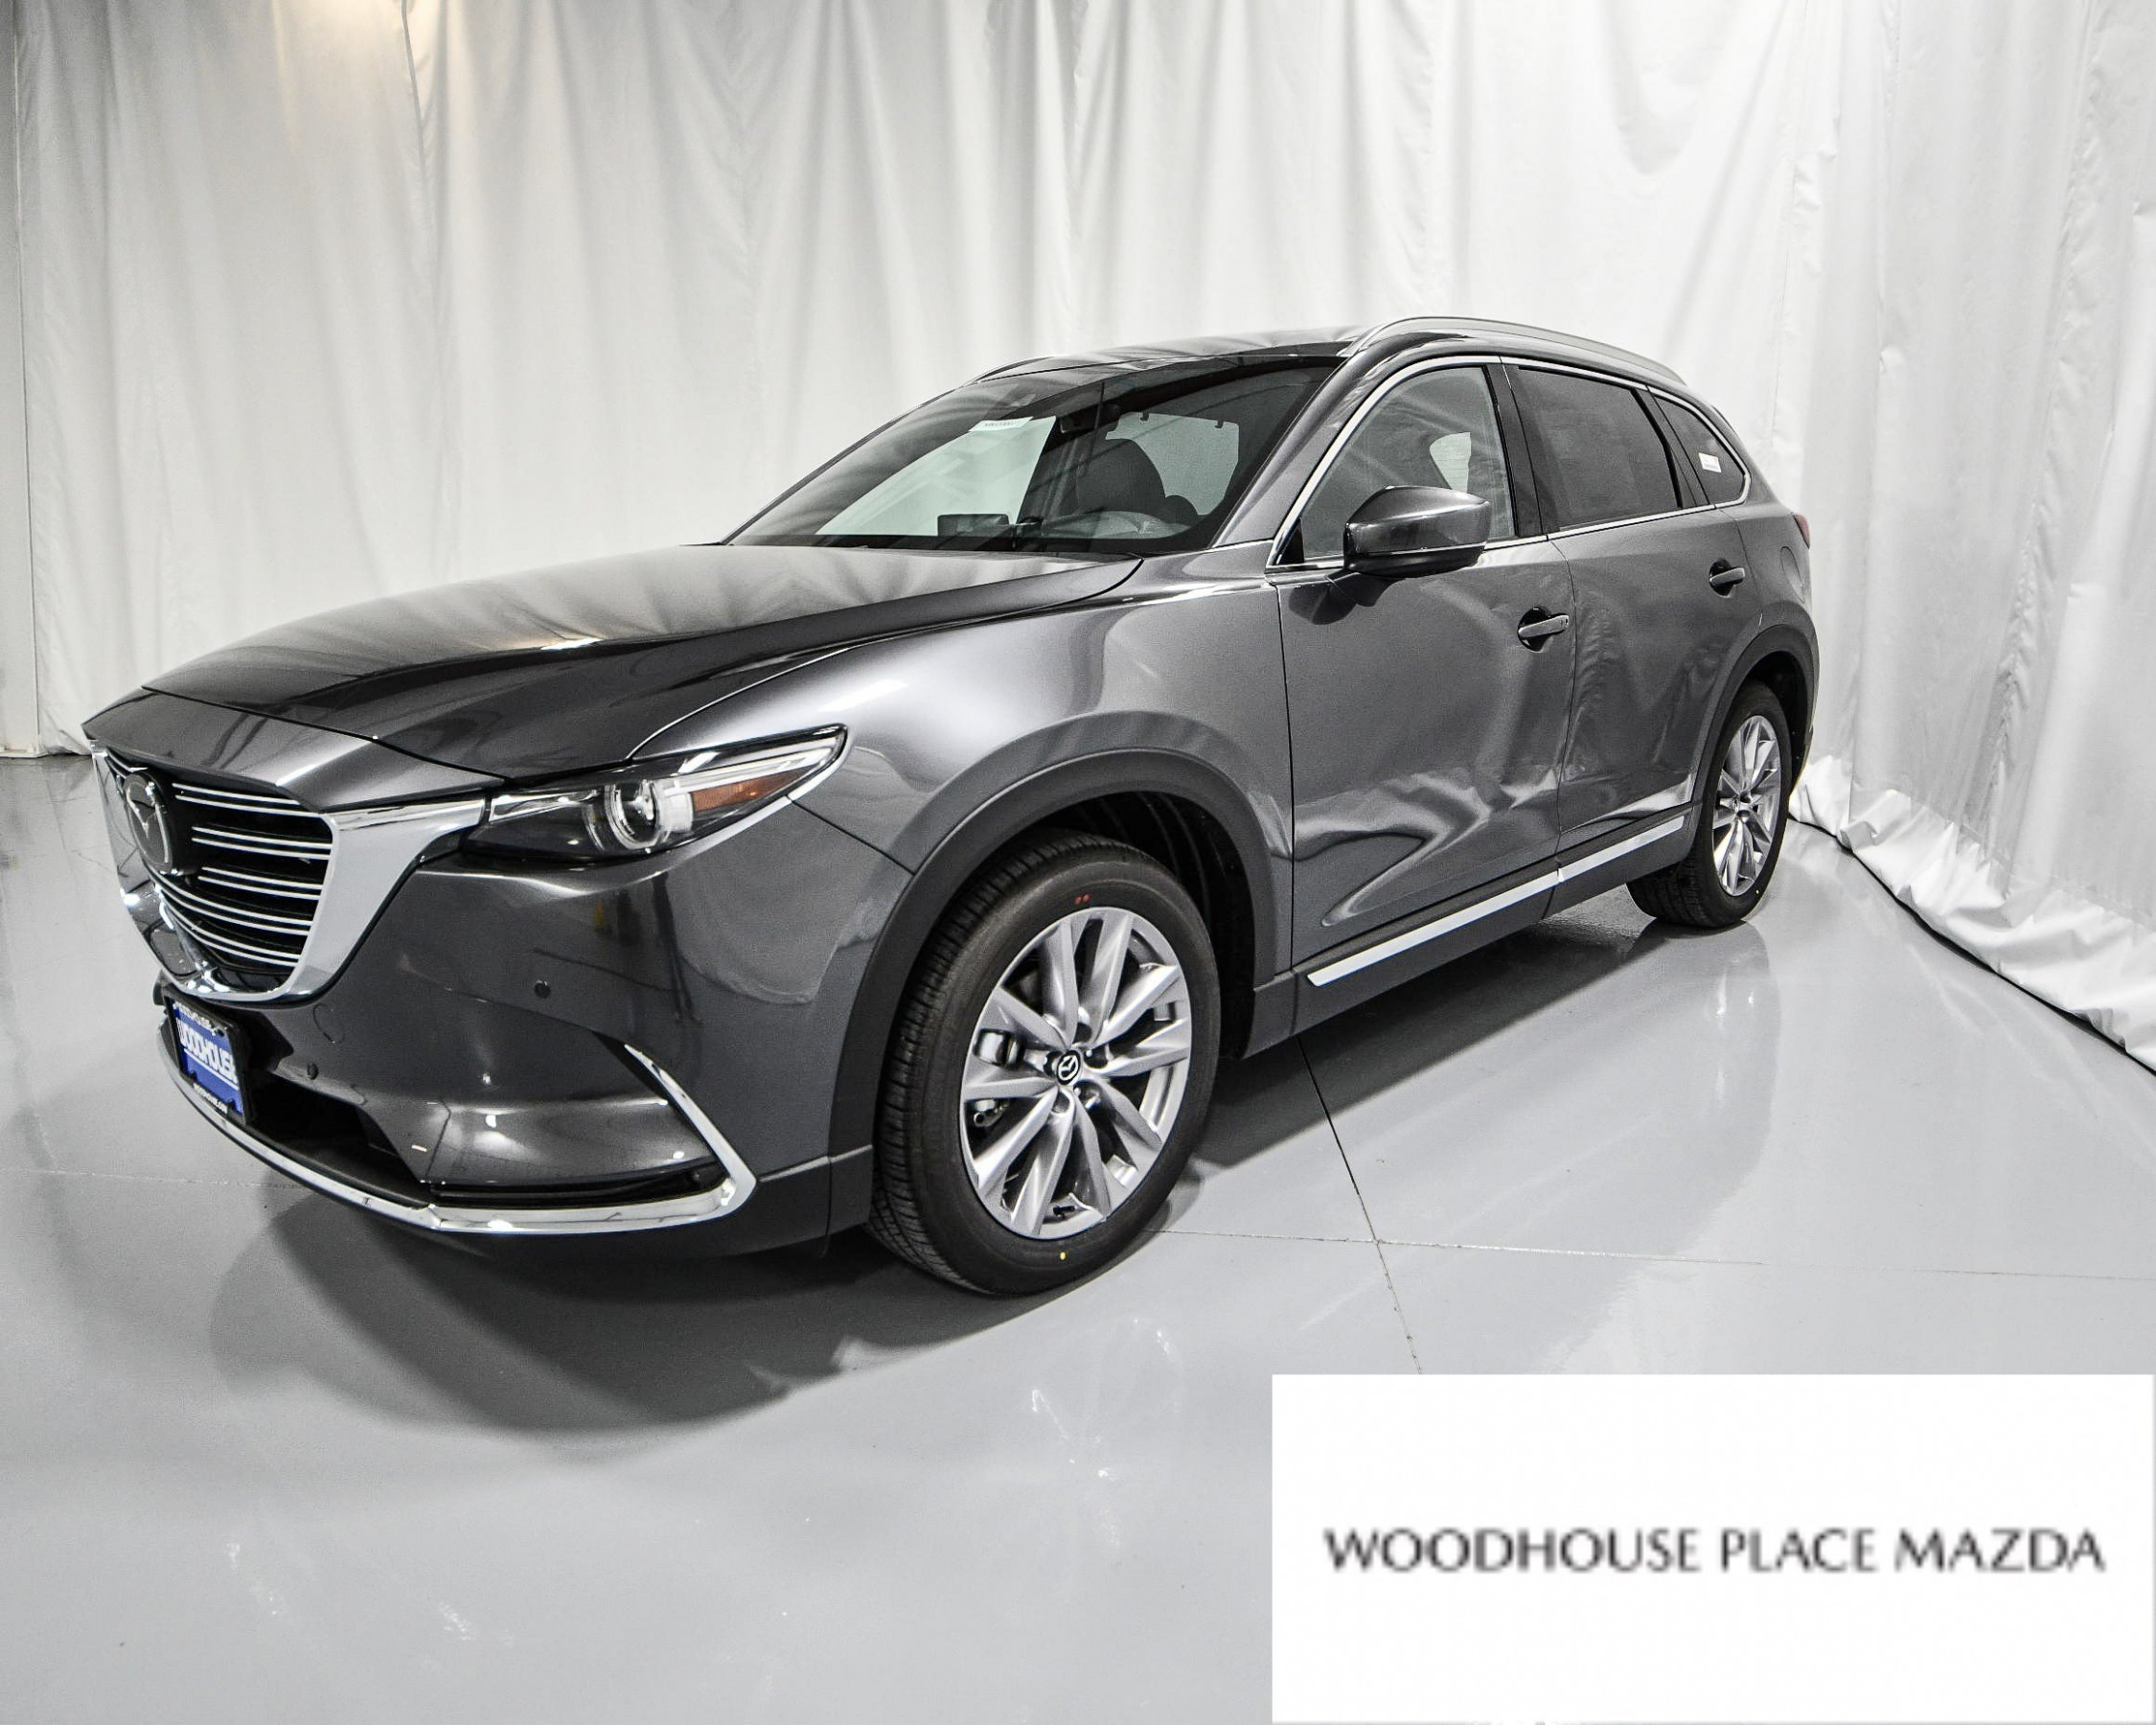 New 11 Mazda CX-11 Grand Touring With Navigation & AWD